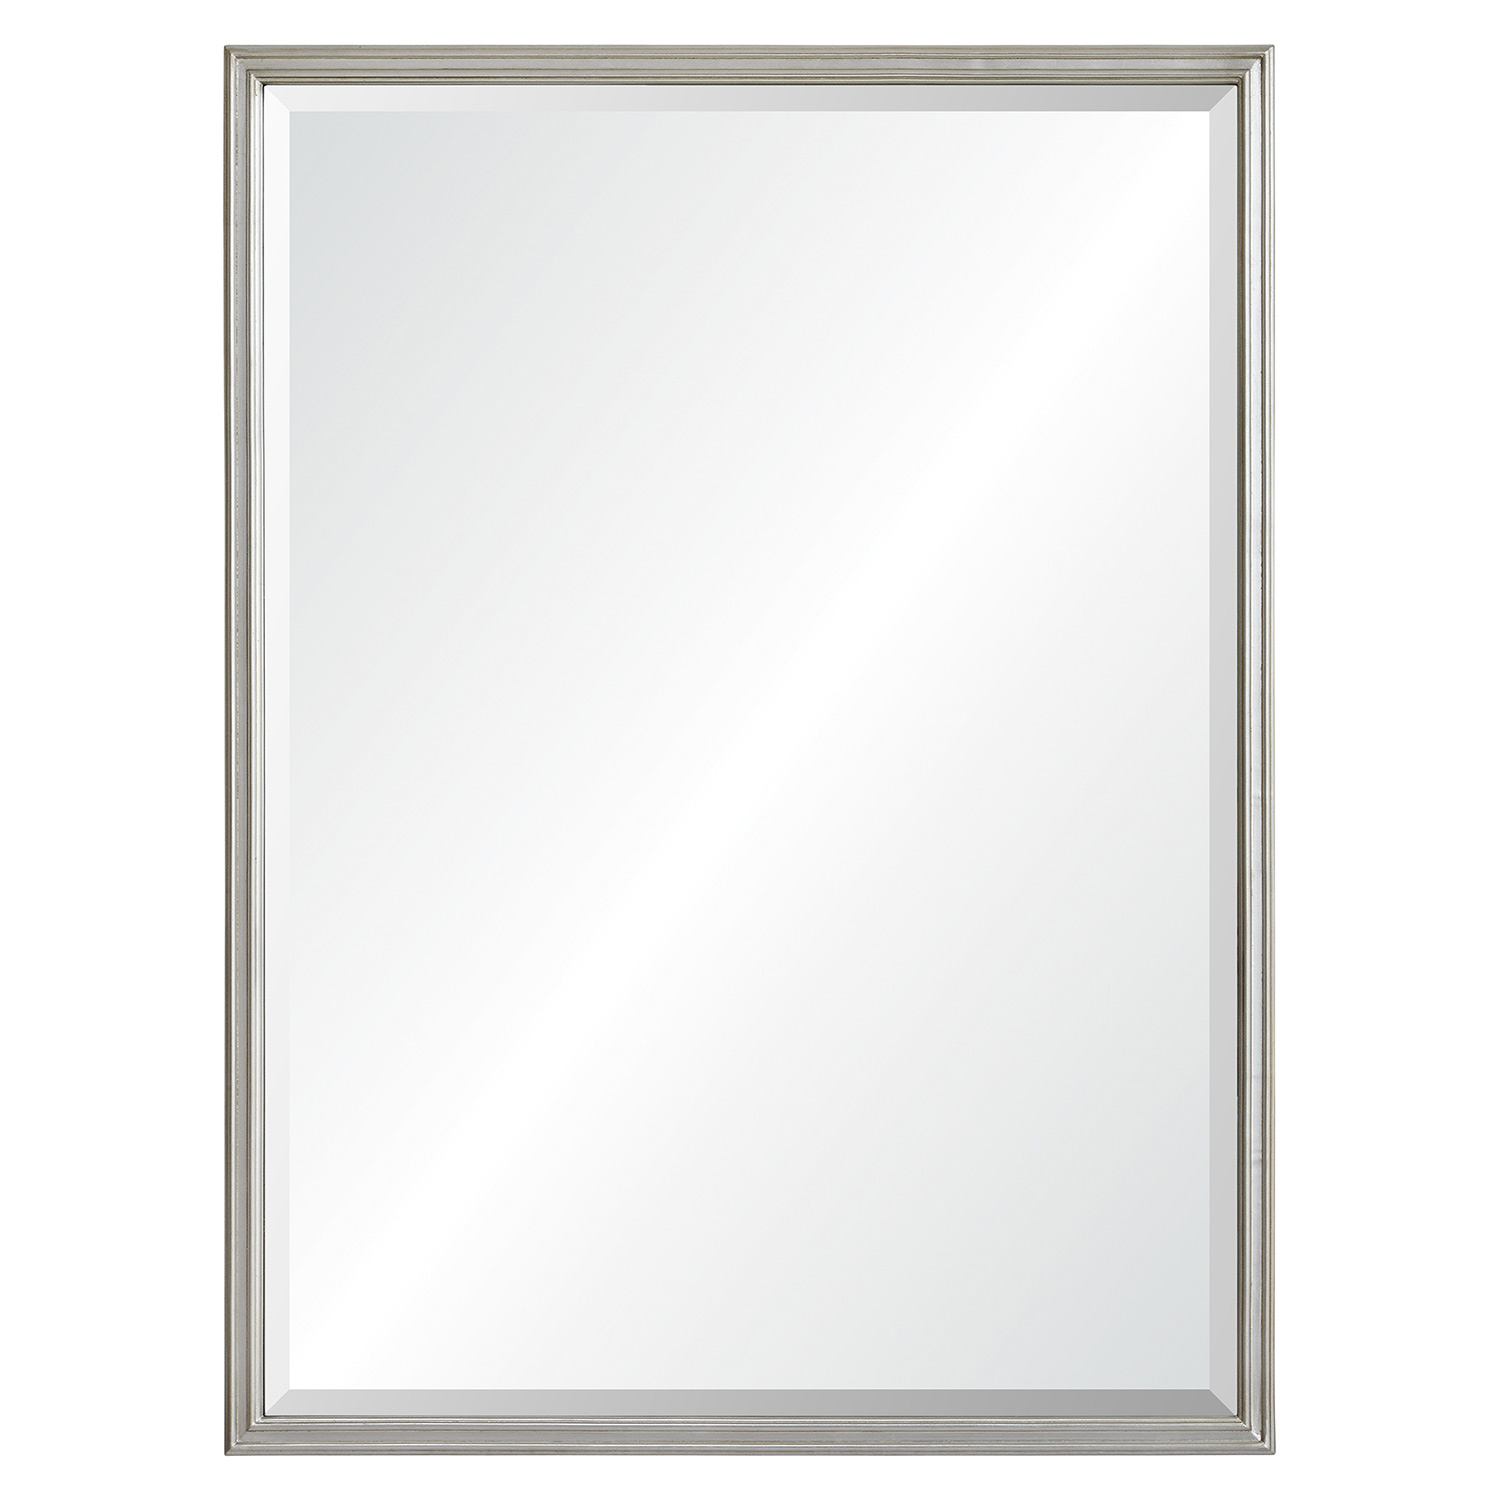 Ren-Wil Cosgrove Rectangular Mirror - Antique Silver